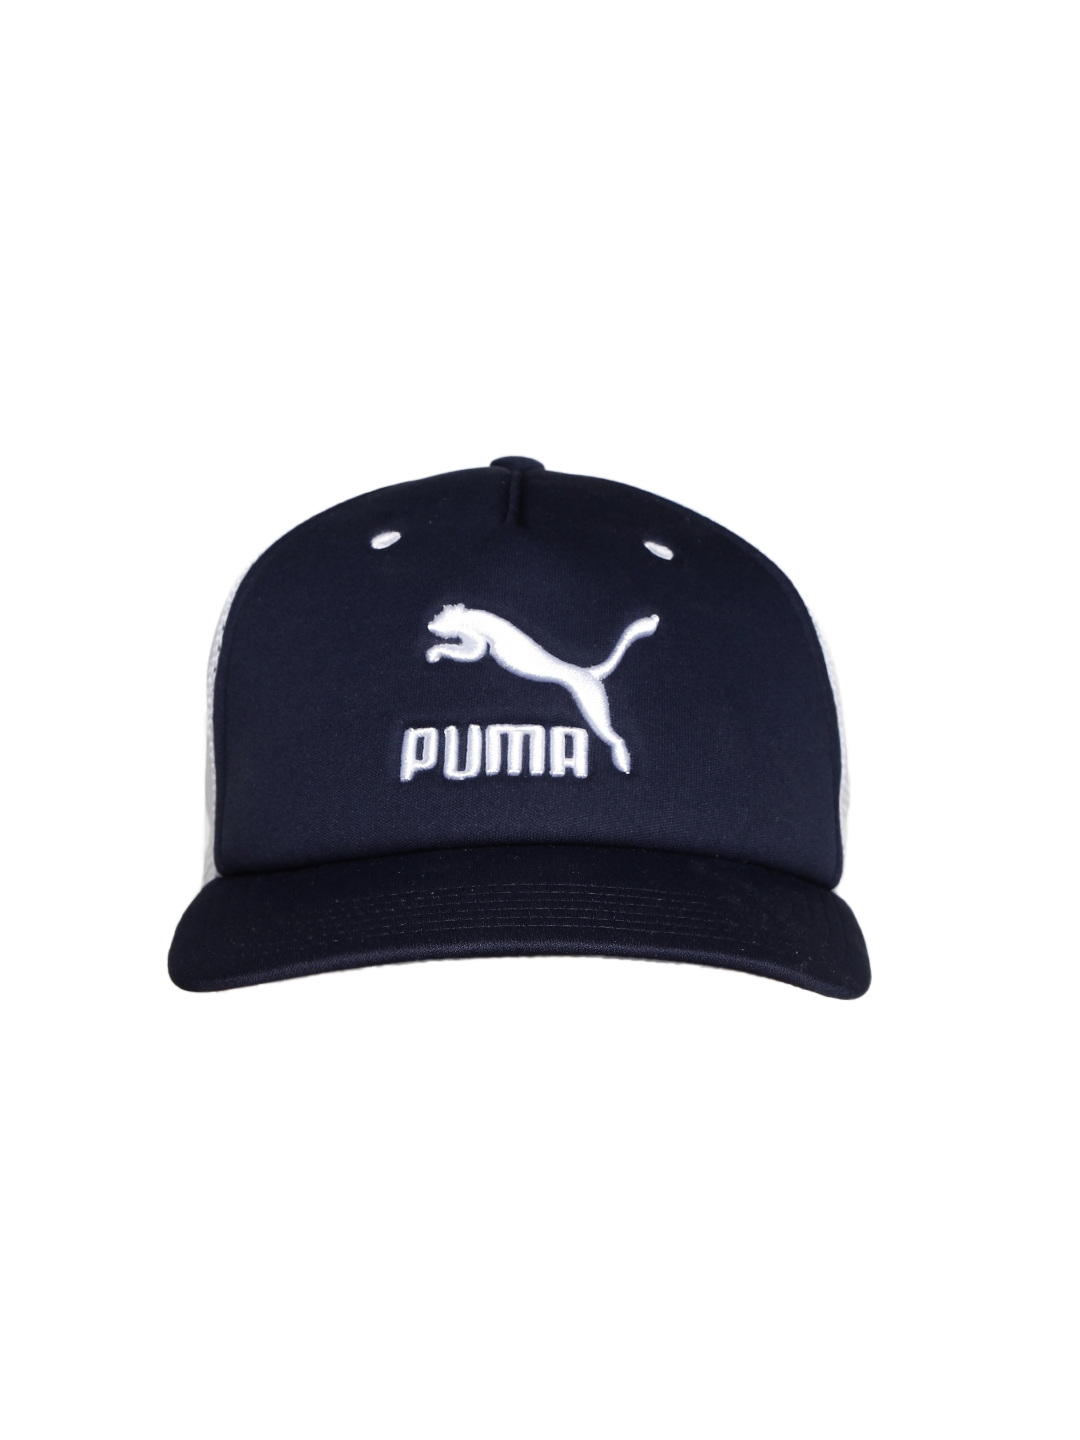 a98b1fa2b40 ... discount code for buy puma unisex white navy archive trucker cap caps  for unisex 2030602 myntra